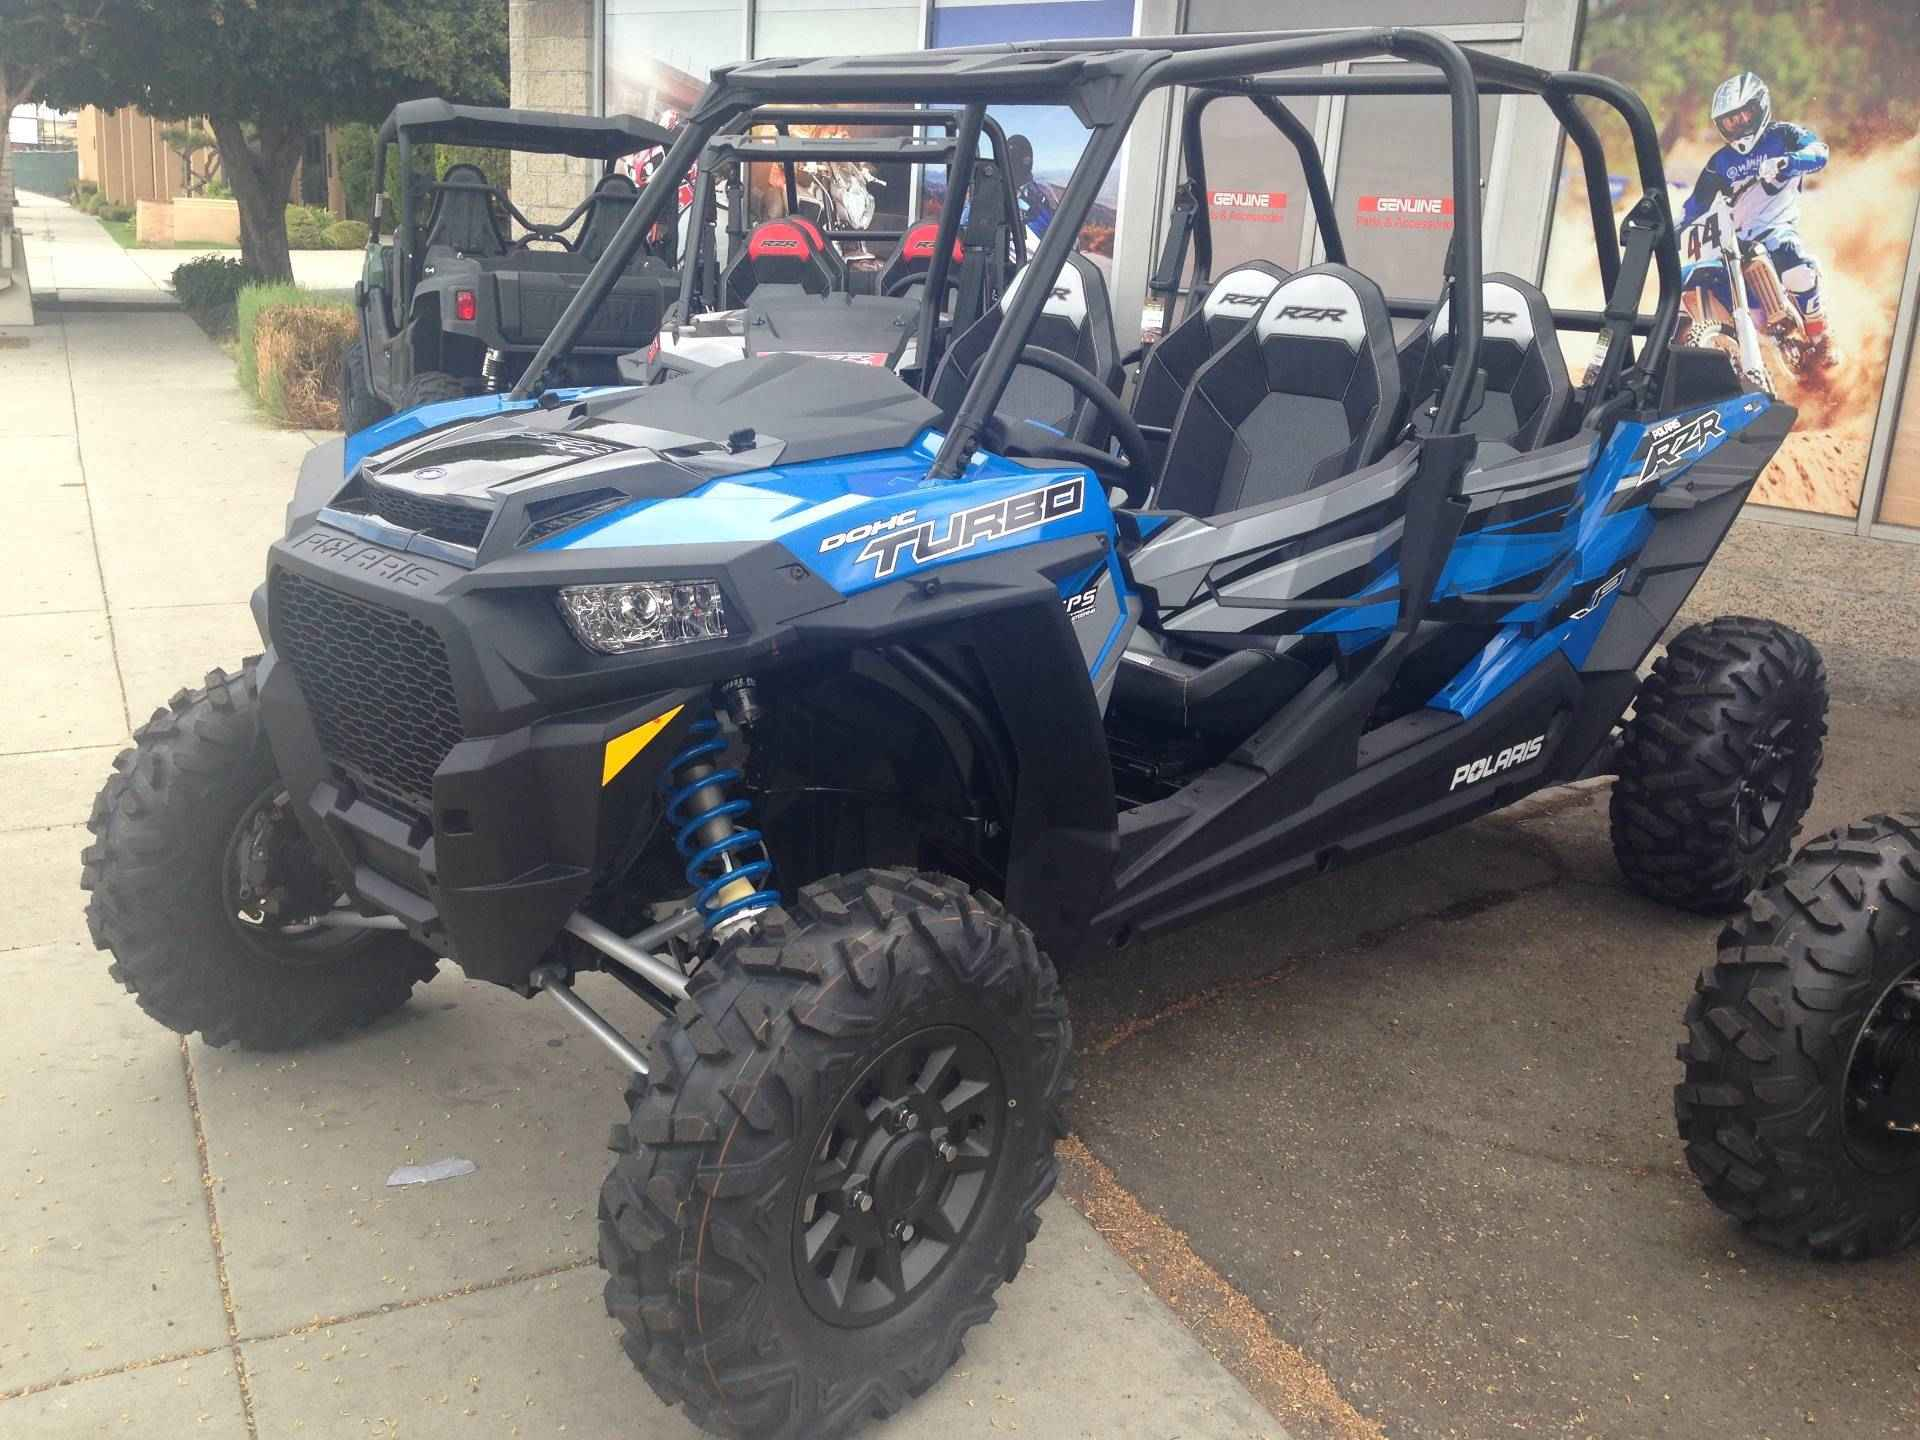 new 2018 polaris rzr xp 4 turbo eps atvs for sale in california on atv trades. Black Bedroom Furniture Sets. Home Design Ideas